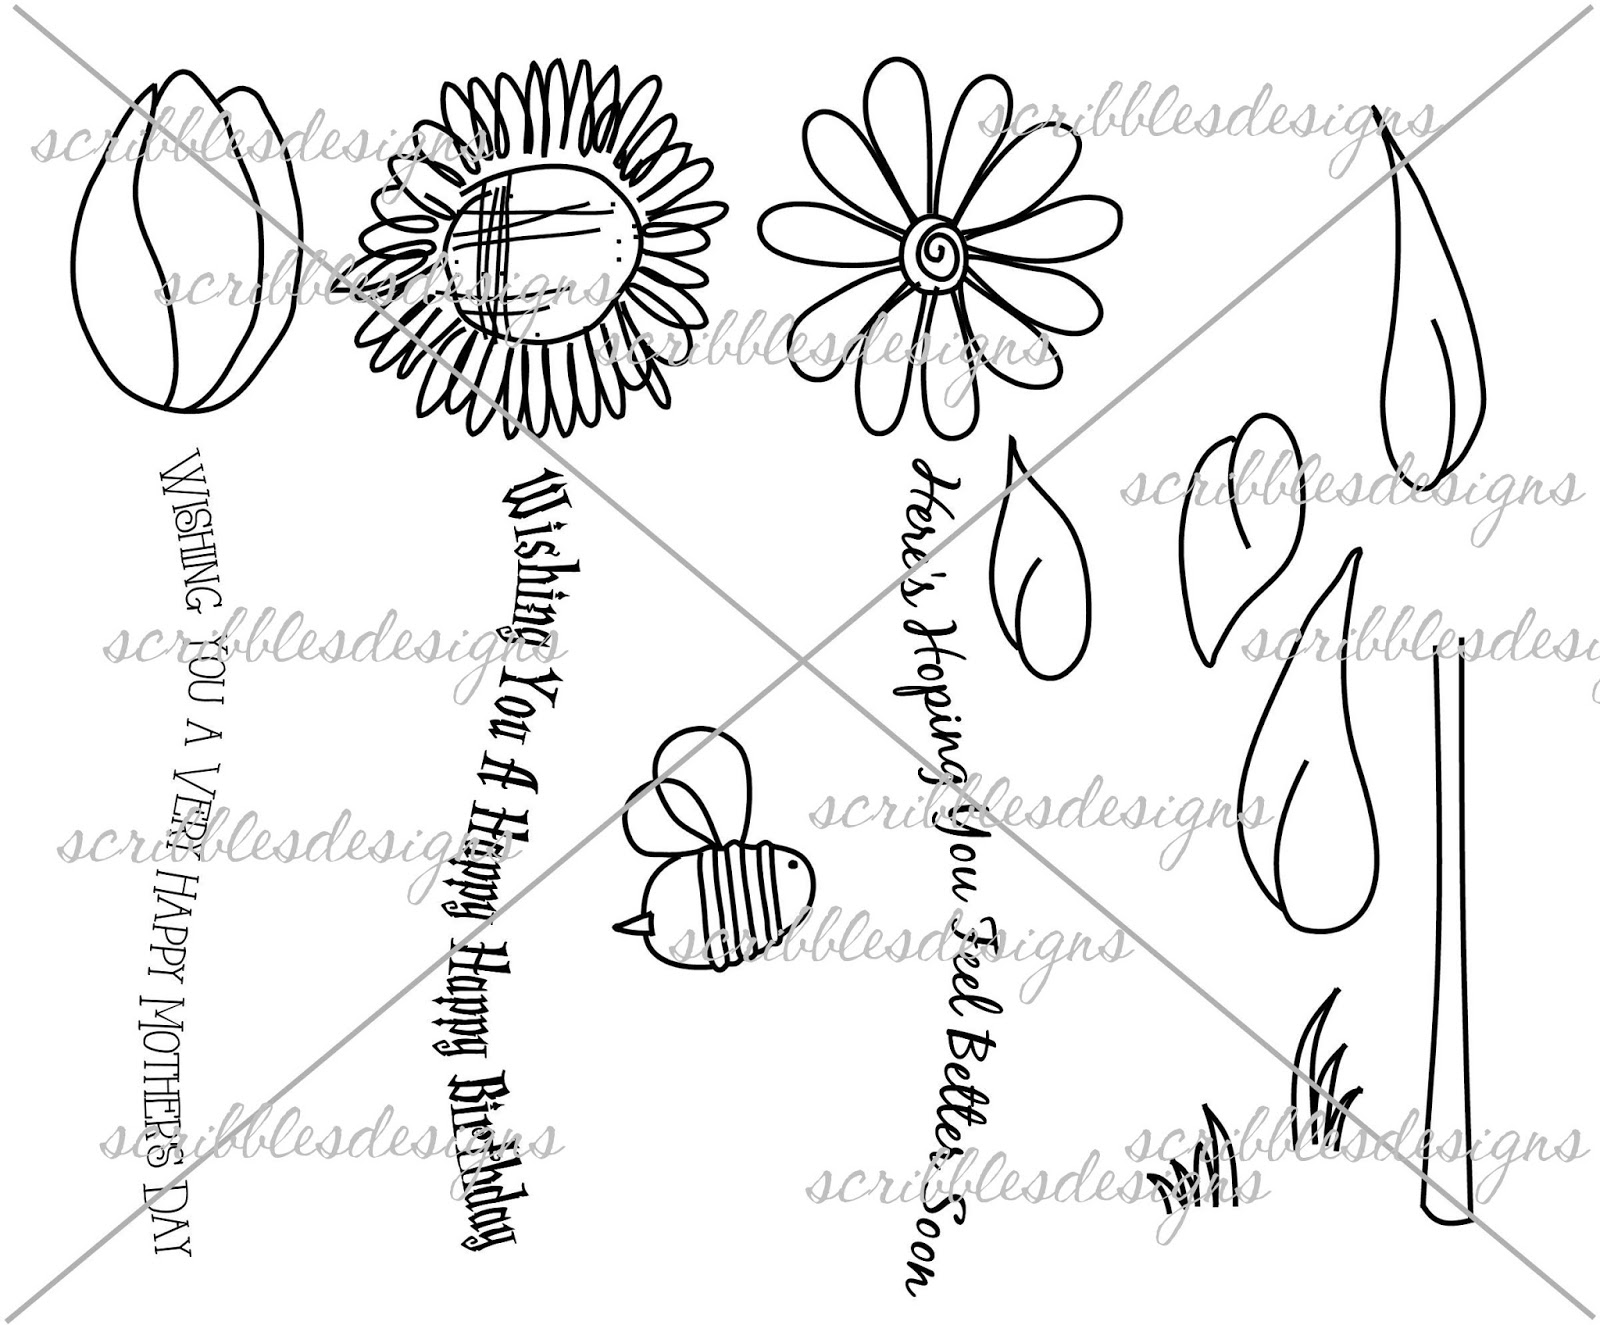 http://buyscribblesdesigns.blogspot.co.uk/2015/04/641-flower-set-1-400.html